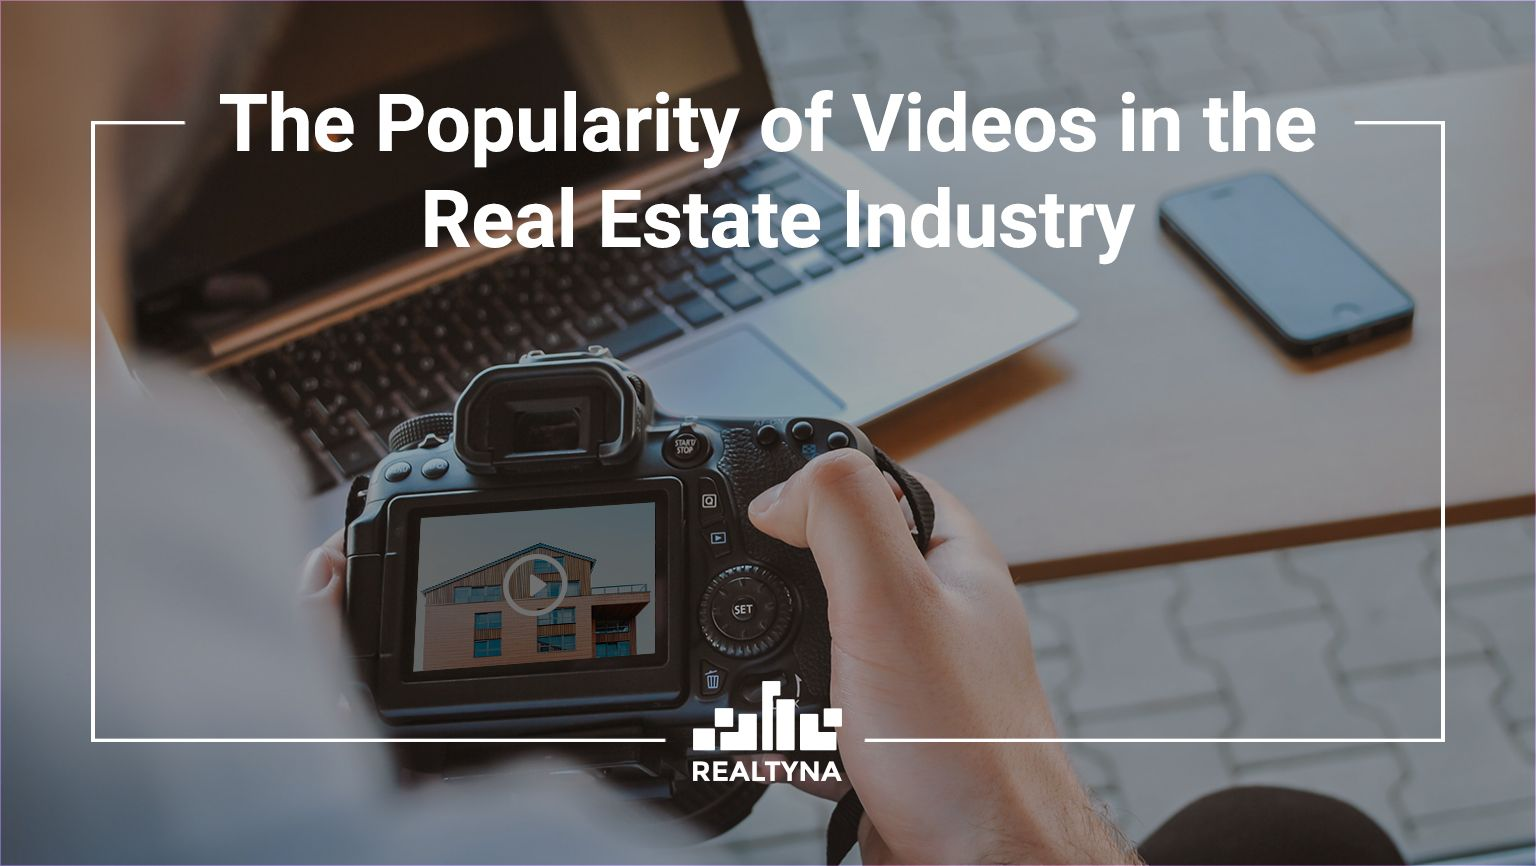 The Popularity of Videos in the Real Estate Industry